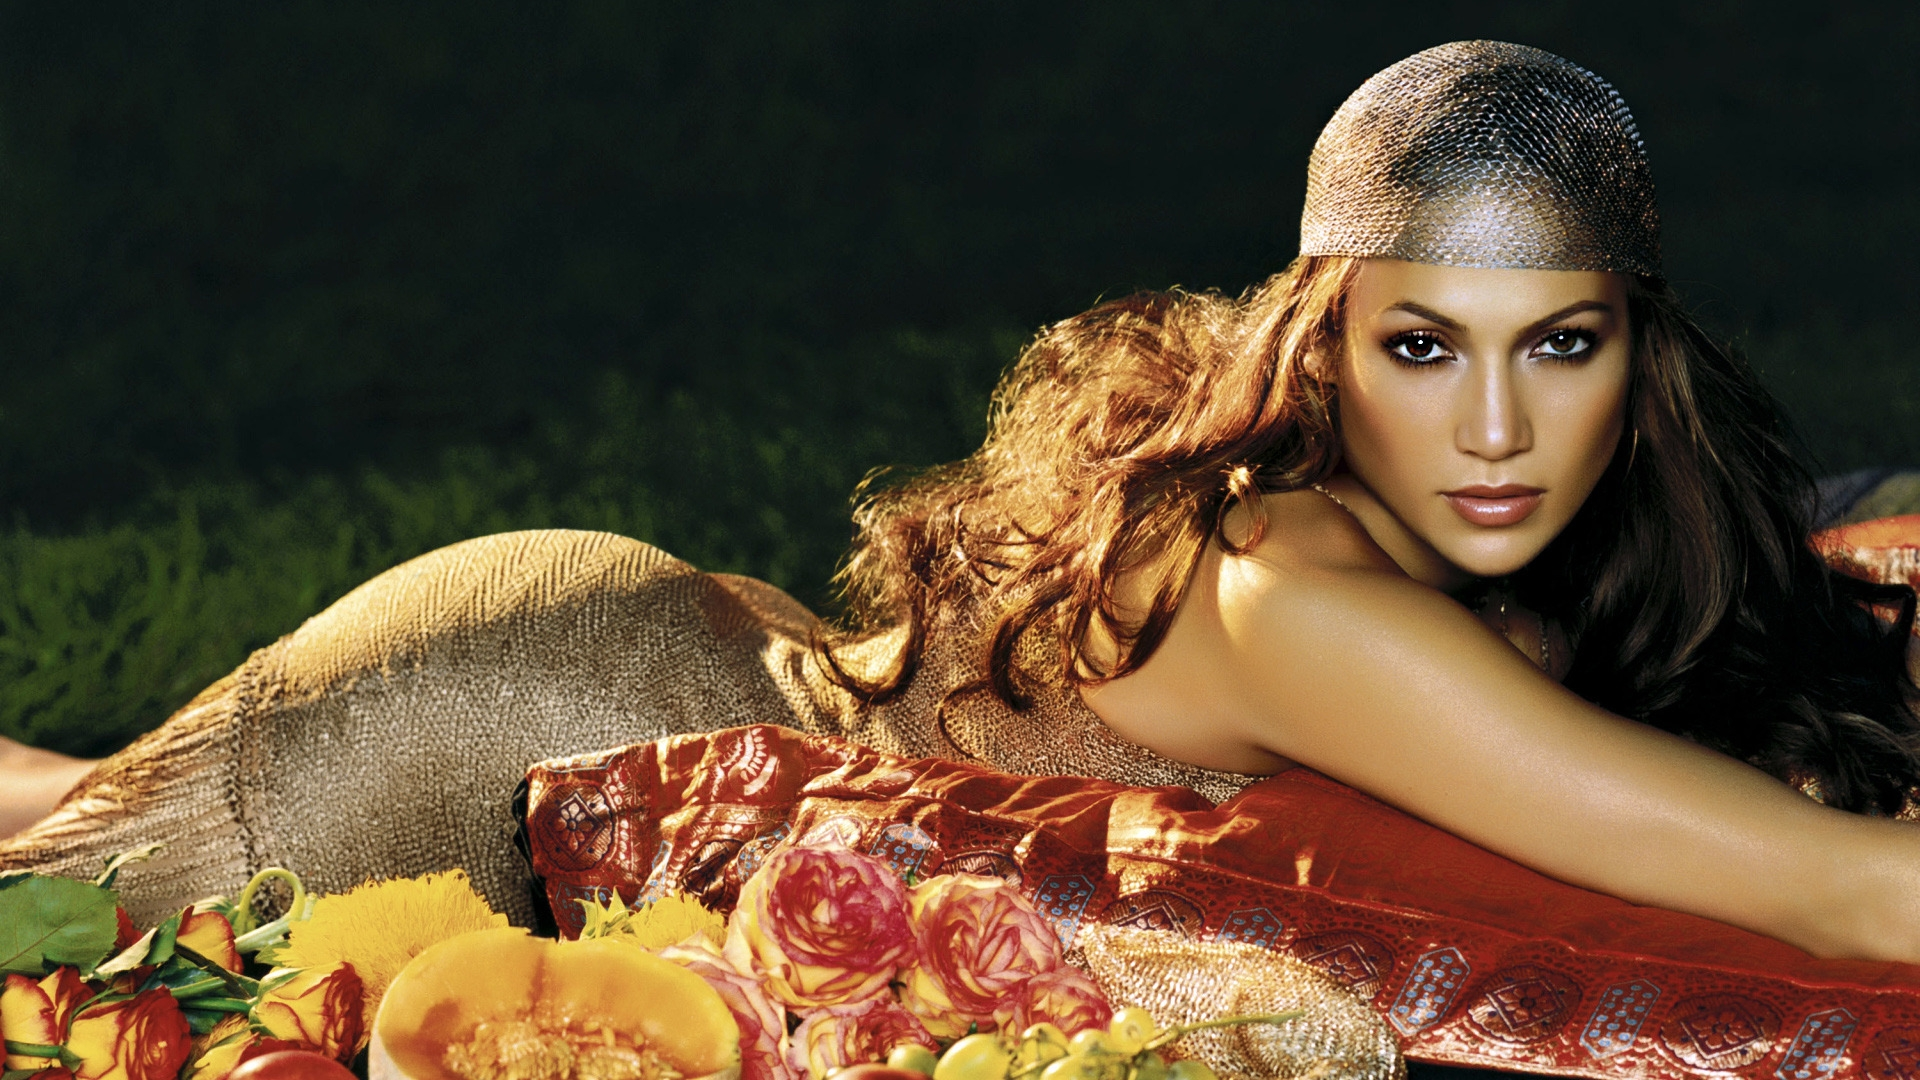 Jennifer Lopez Gipsy for 1920 x 1080 HDTV 1080p resolution